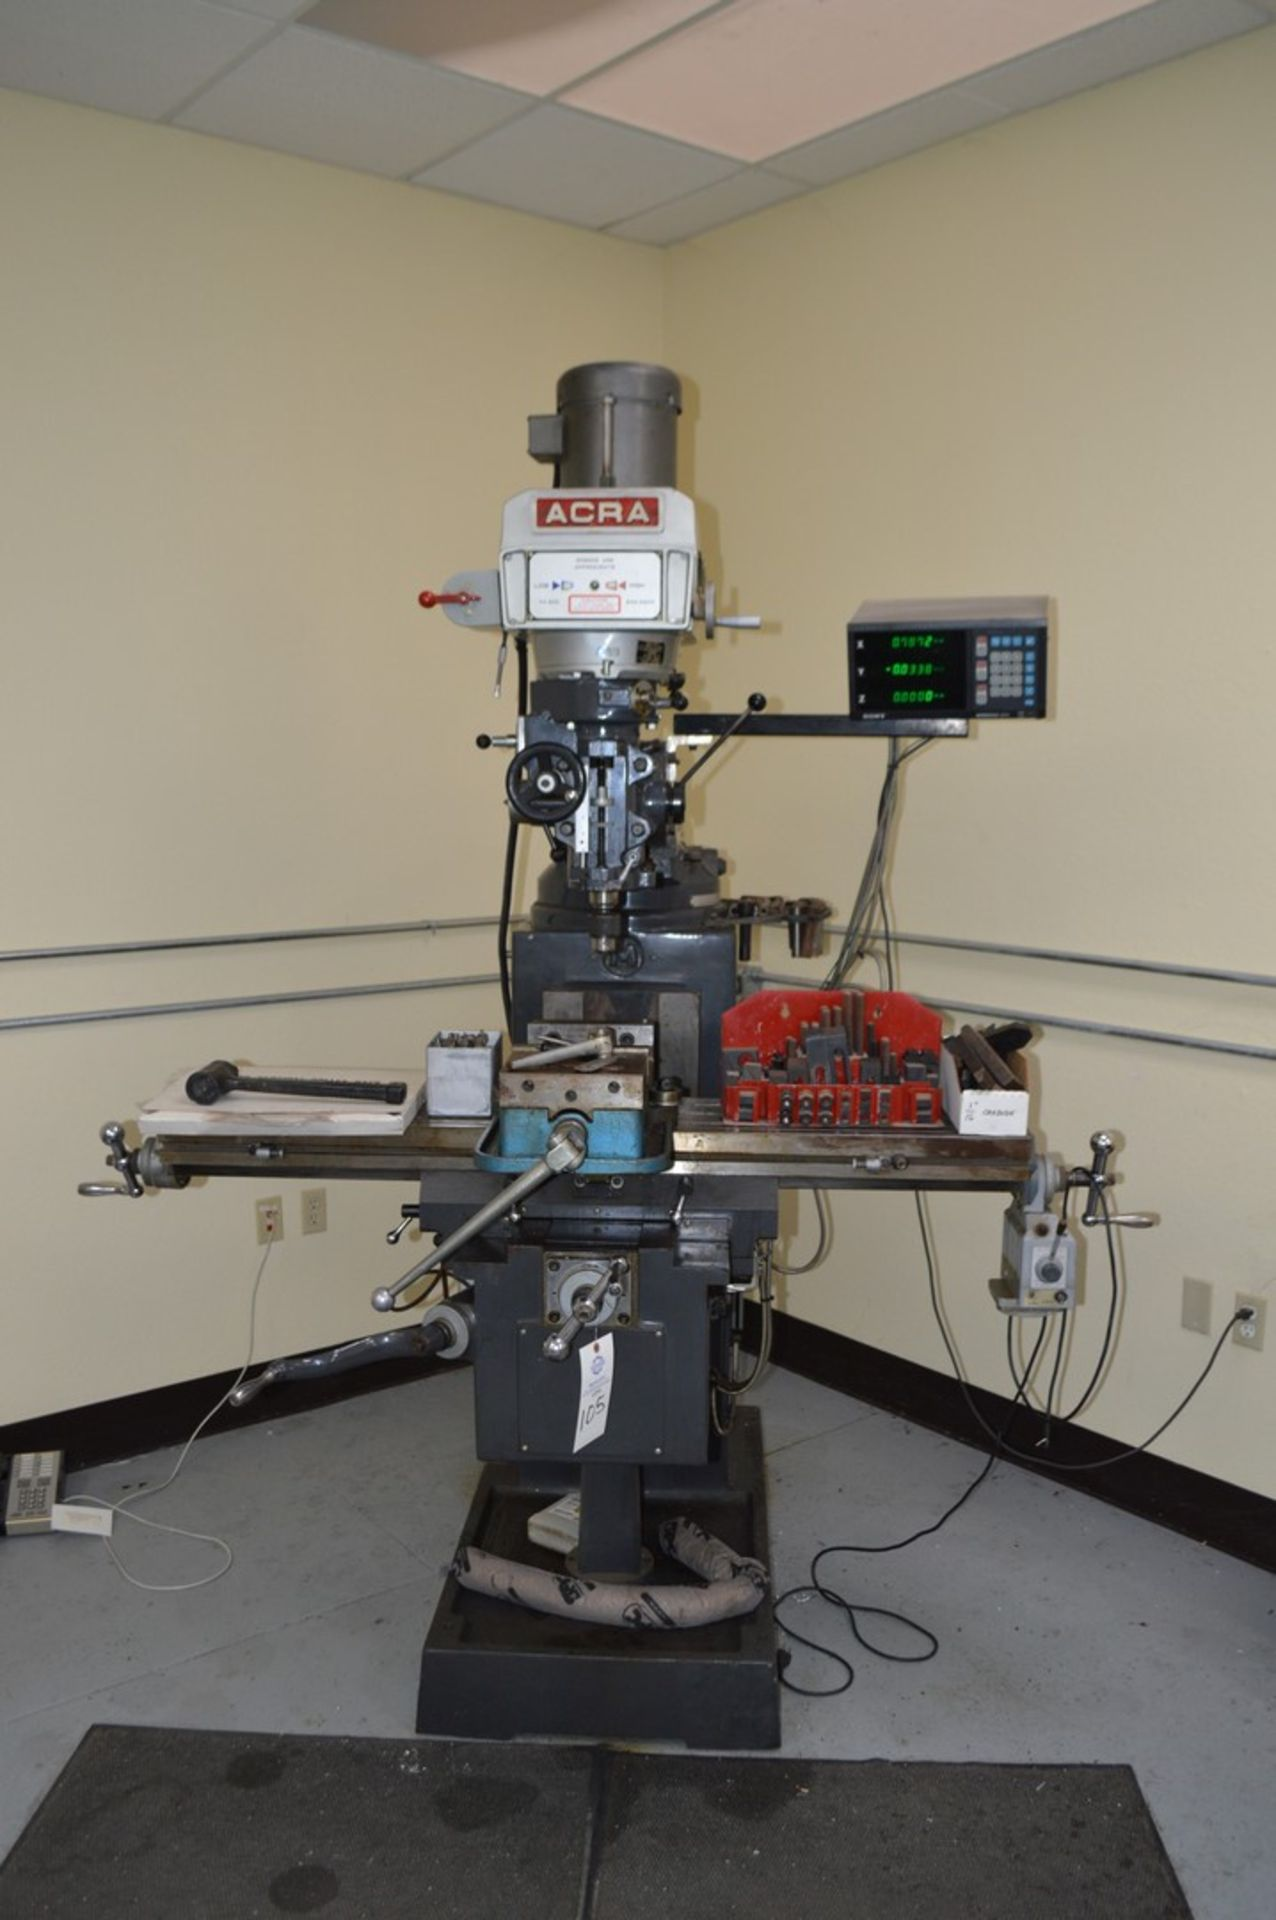 Acer 3 Axis knee mill, tilting head, 2 speed, sony magnescale DRO, Milling setup set, table